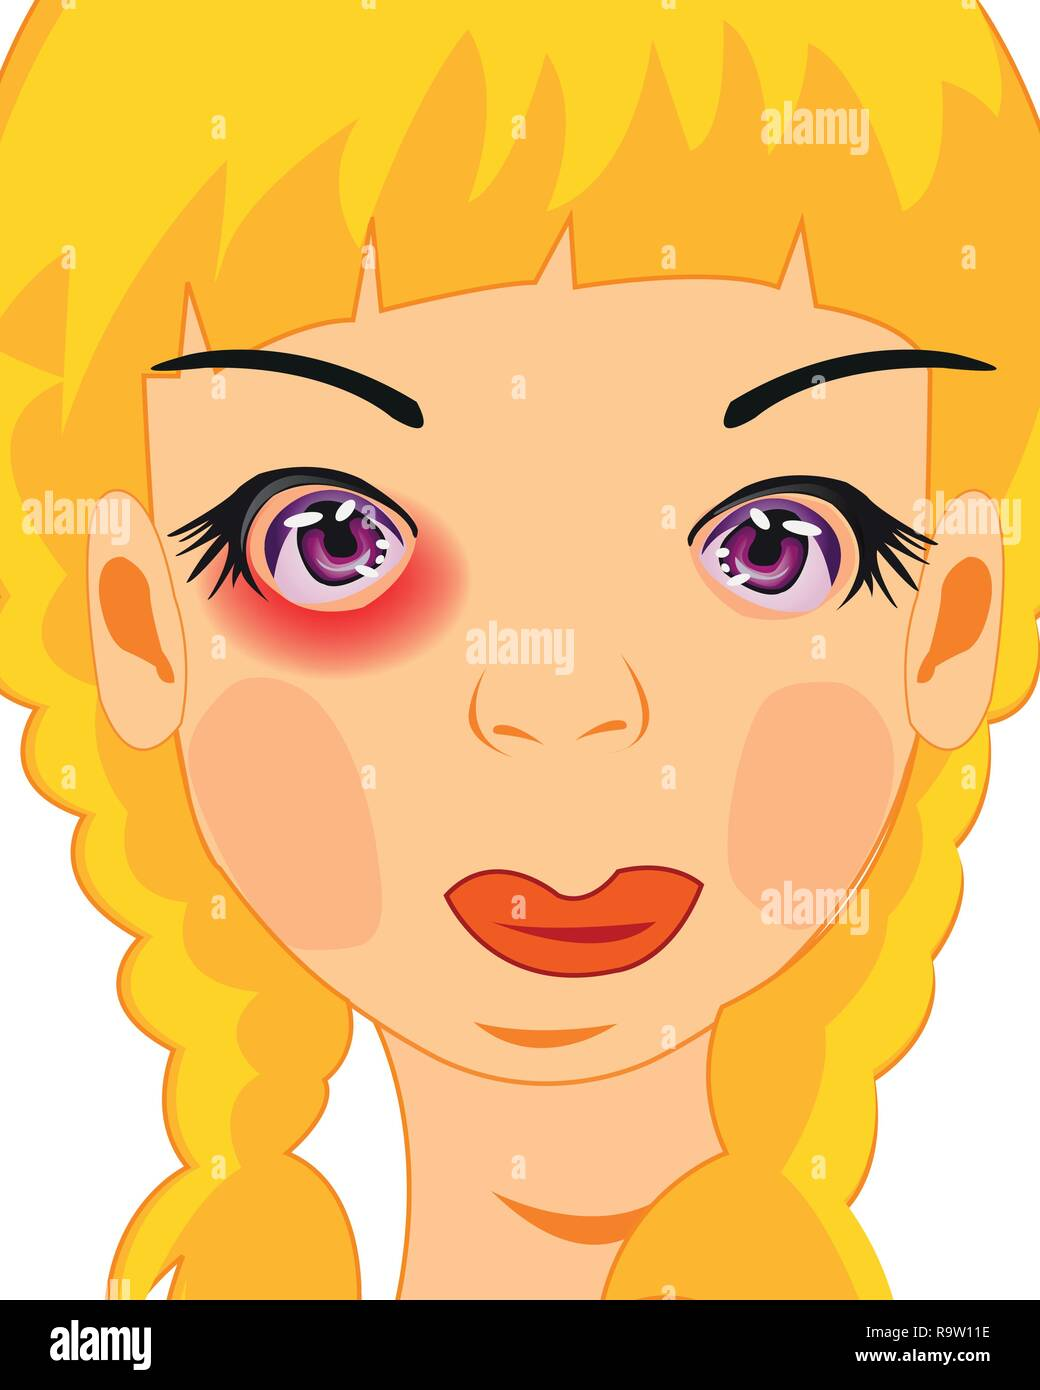 Making look younger girl with bruise under eye - Stock Vector